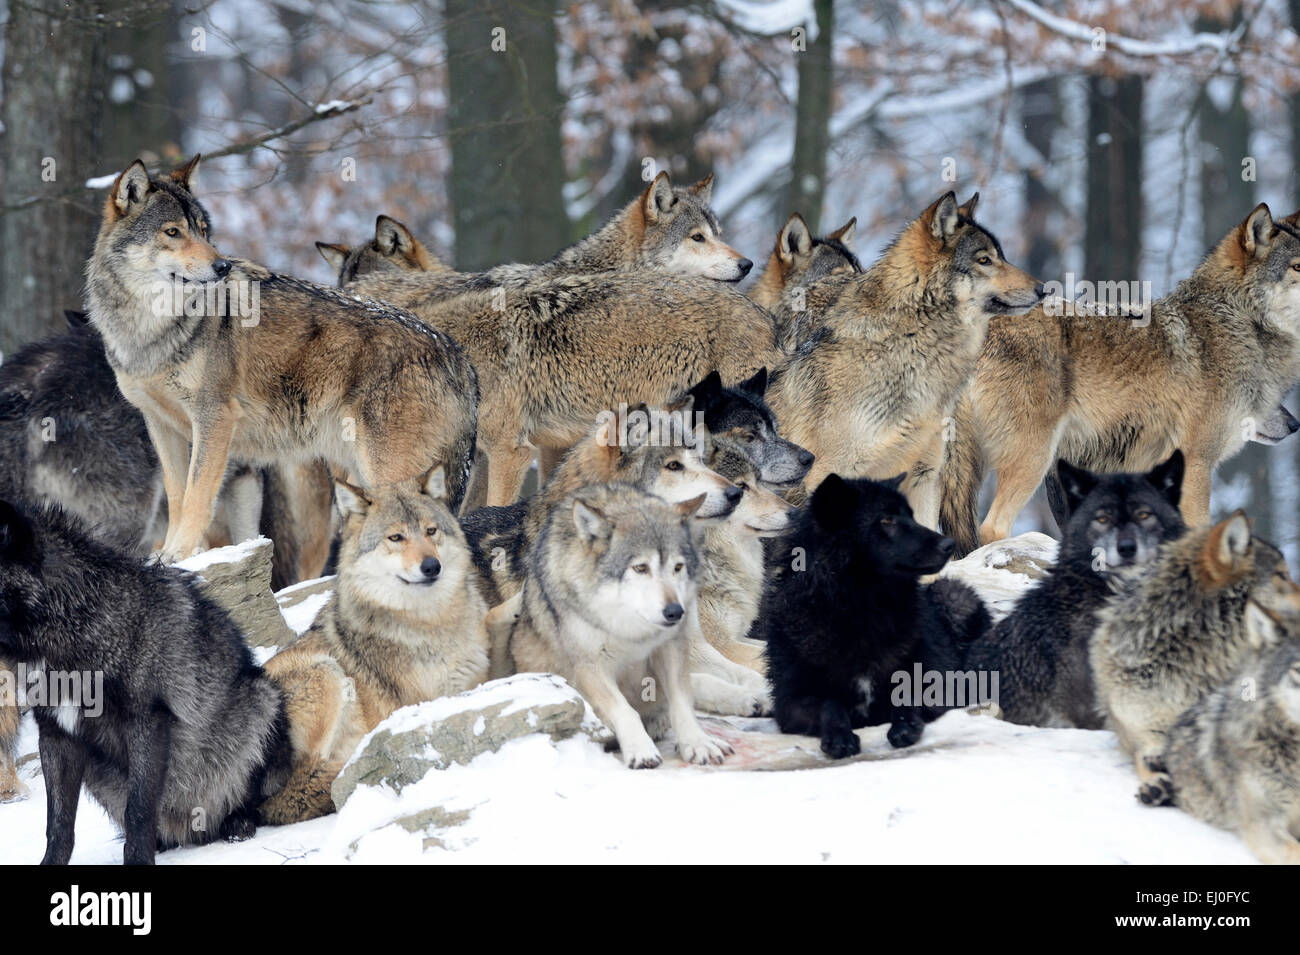 Wolf, animal, predator, wolves, predators, gray wolf, canids, Canis lupus lycaon, Germany, Europe, - Stock Image